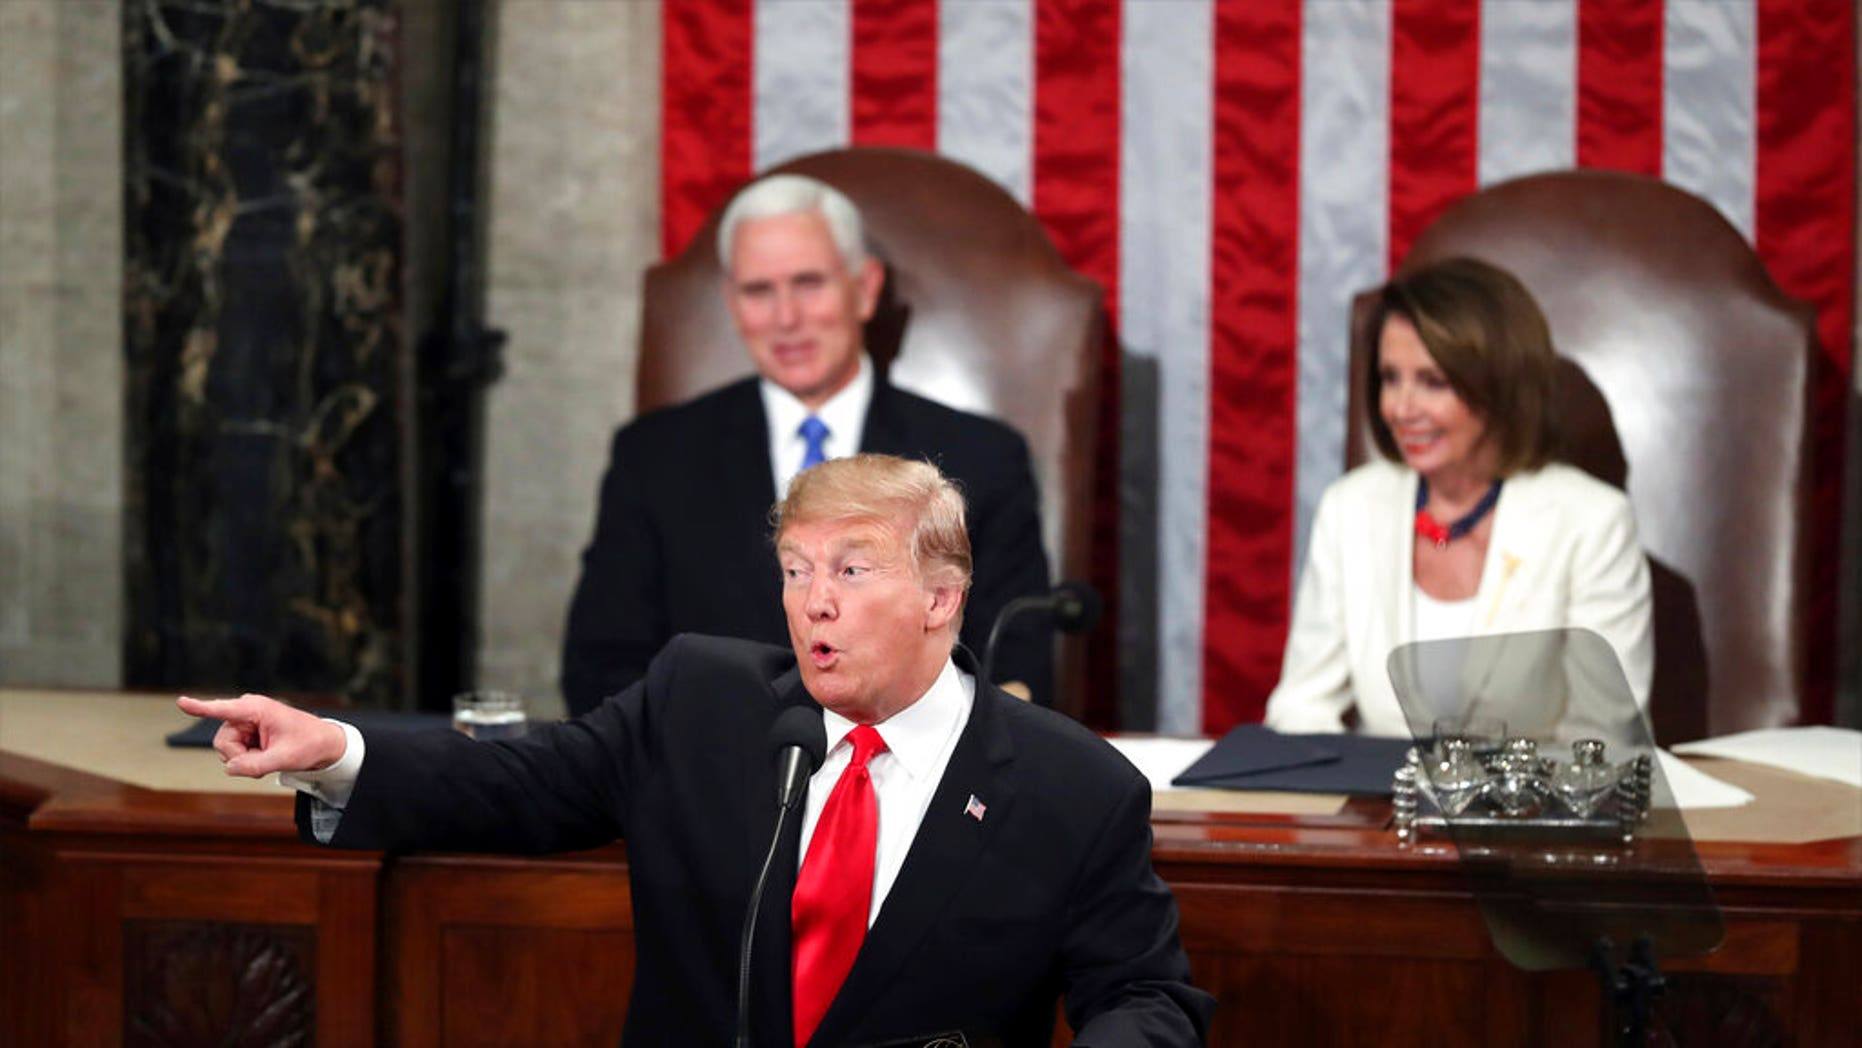 President Trump delivering his State of the Union address Tuesday. (AP Photo/Andrew Harnik)